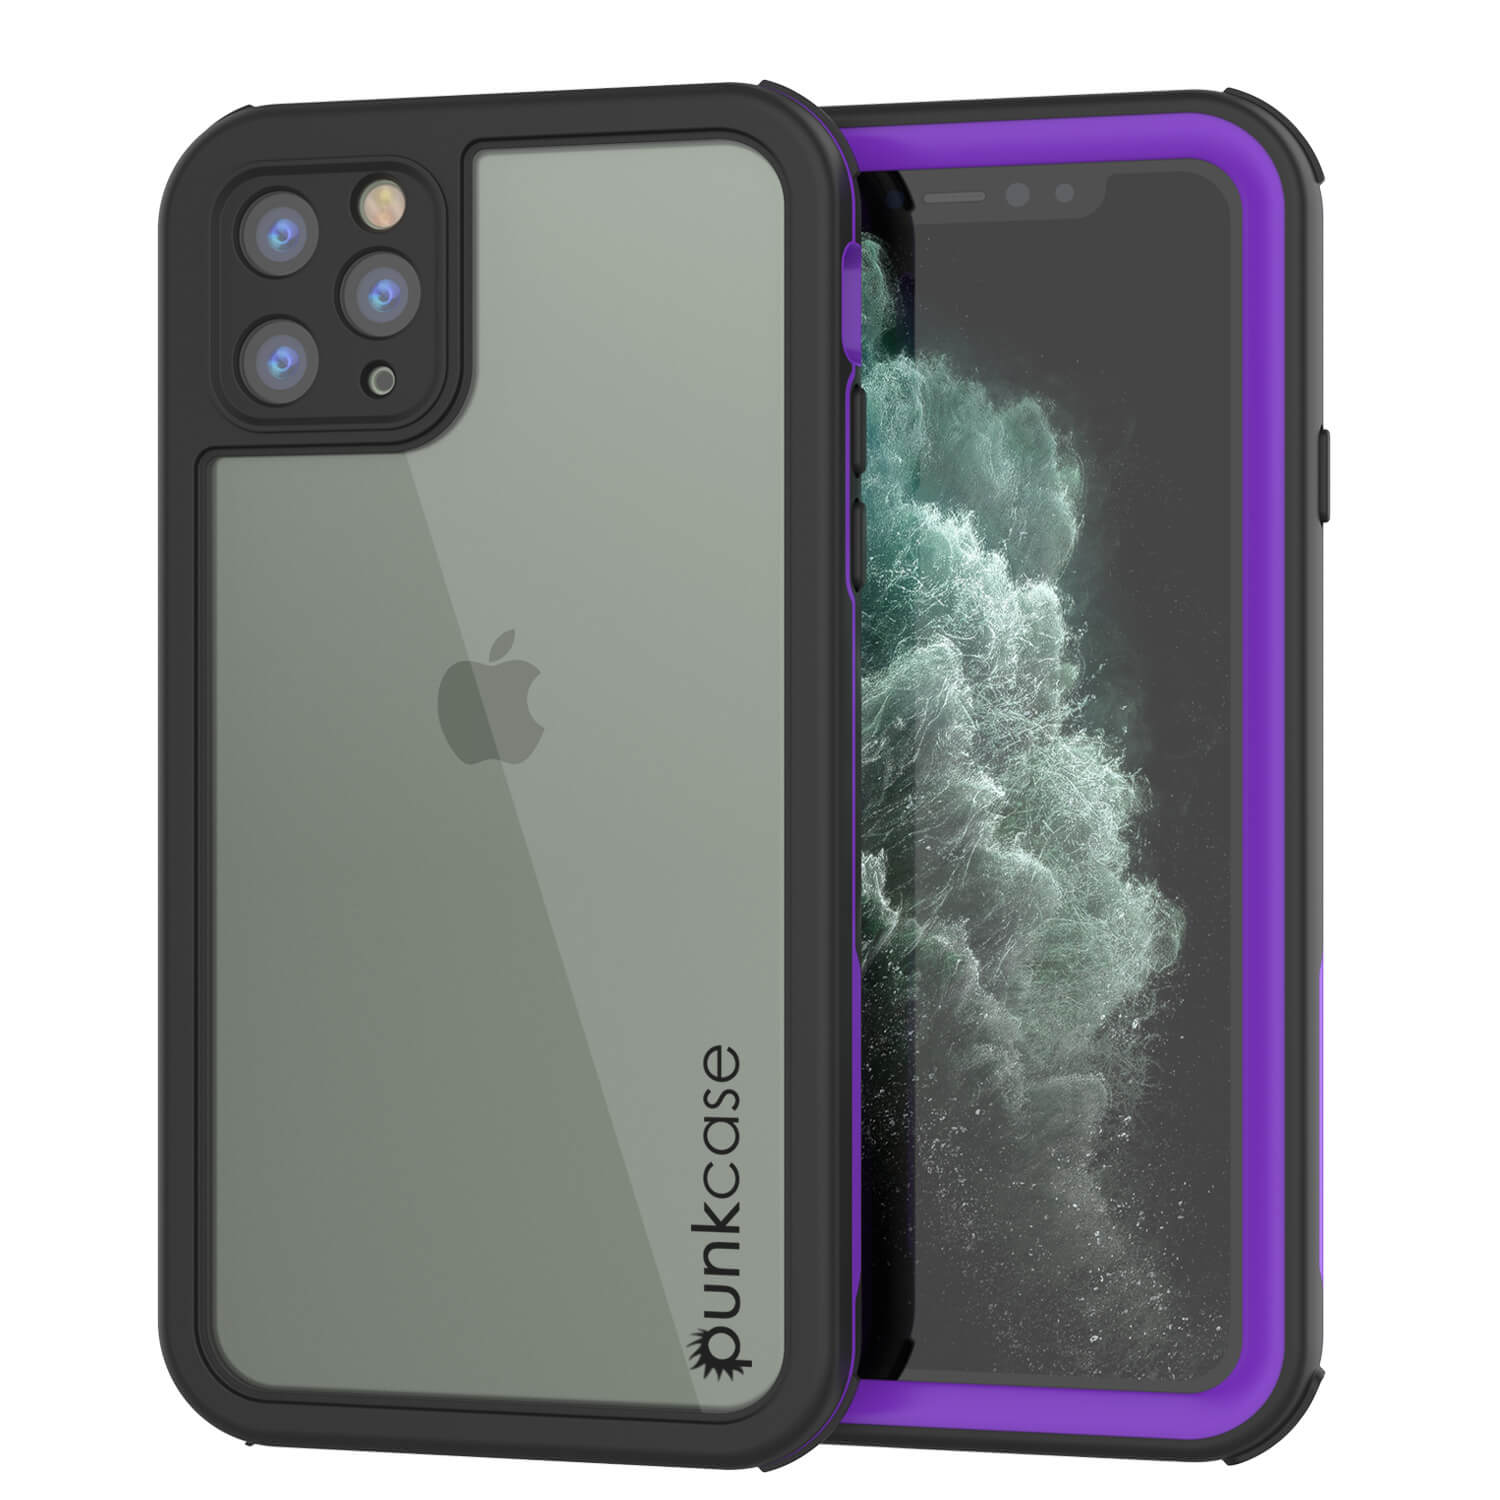 iPhone 11 Pro Max Waterproof IP68 Case, Punkcase [Purple] [Rapture Series]  W/Built in Screen Protector